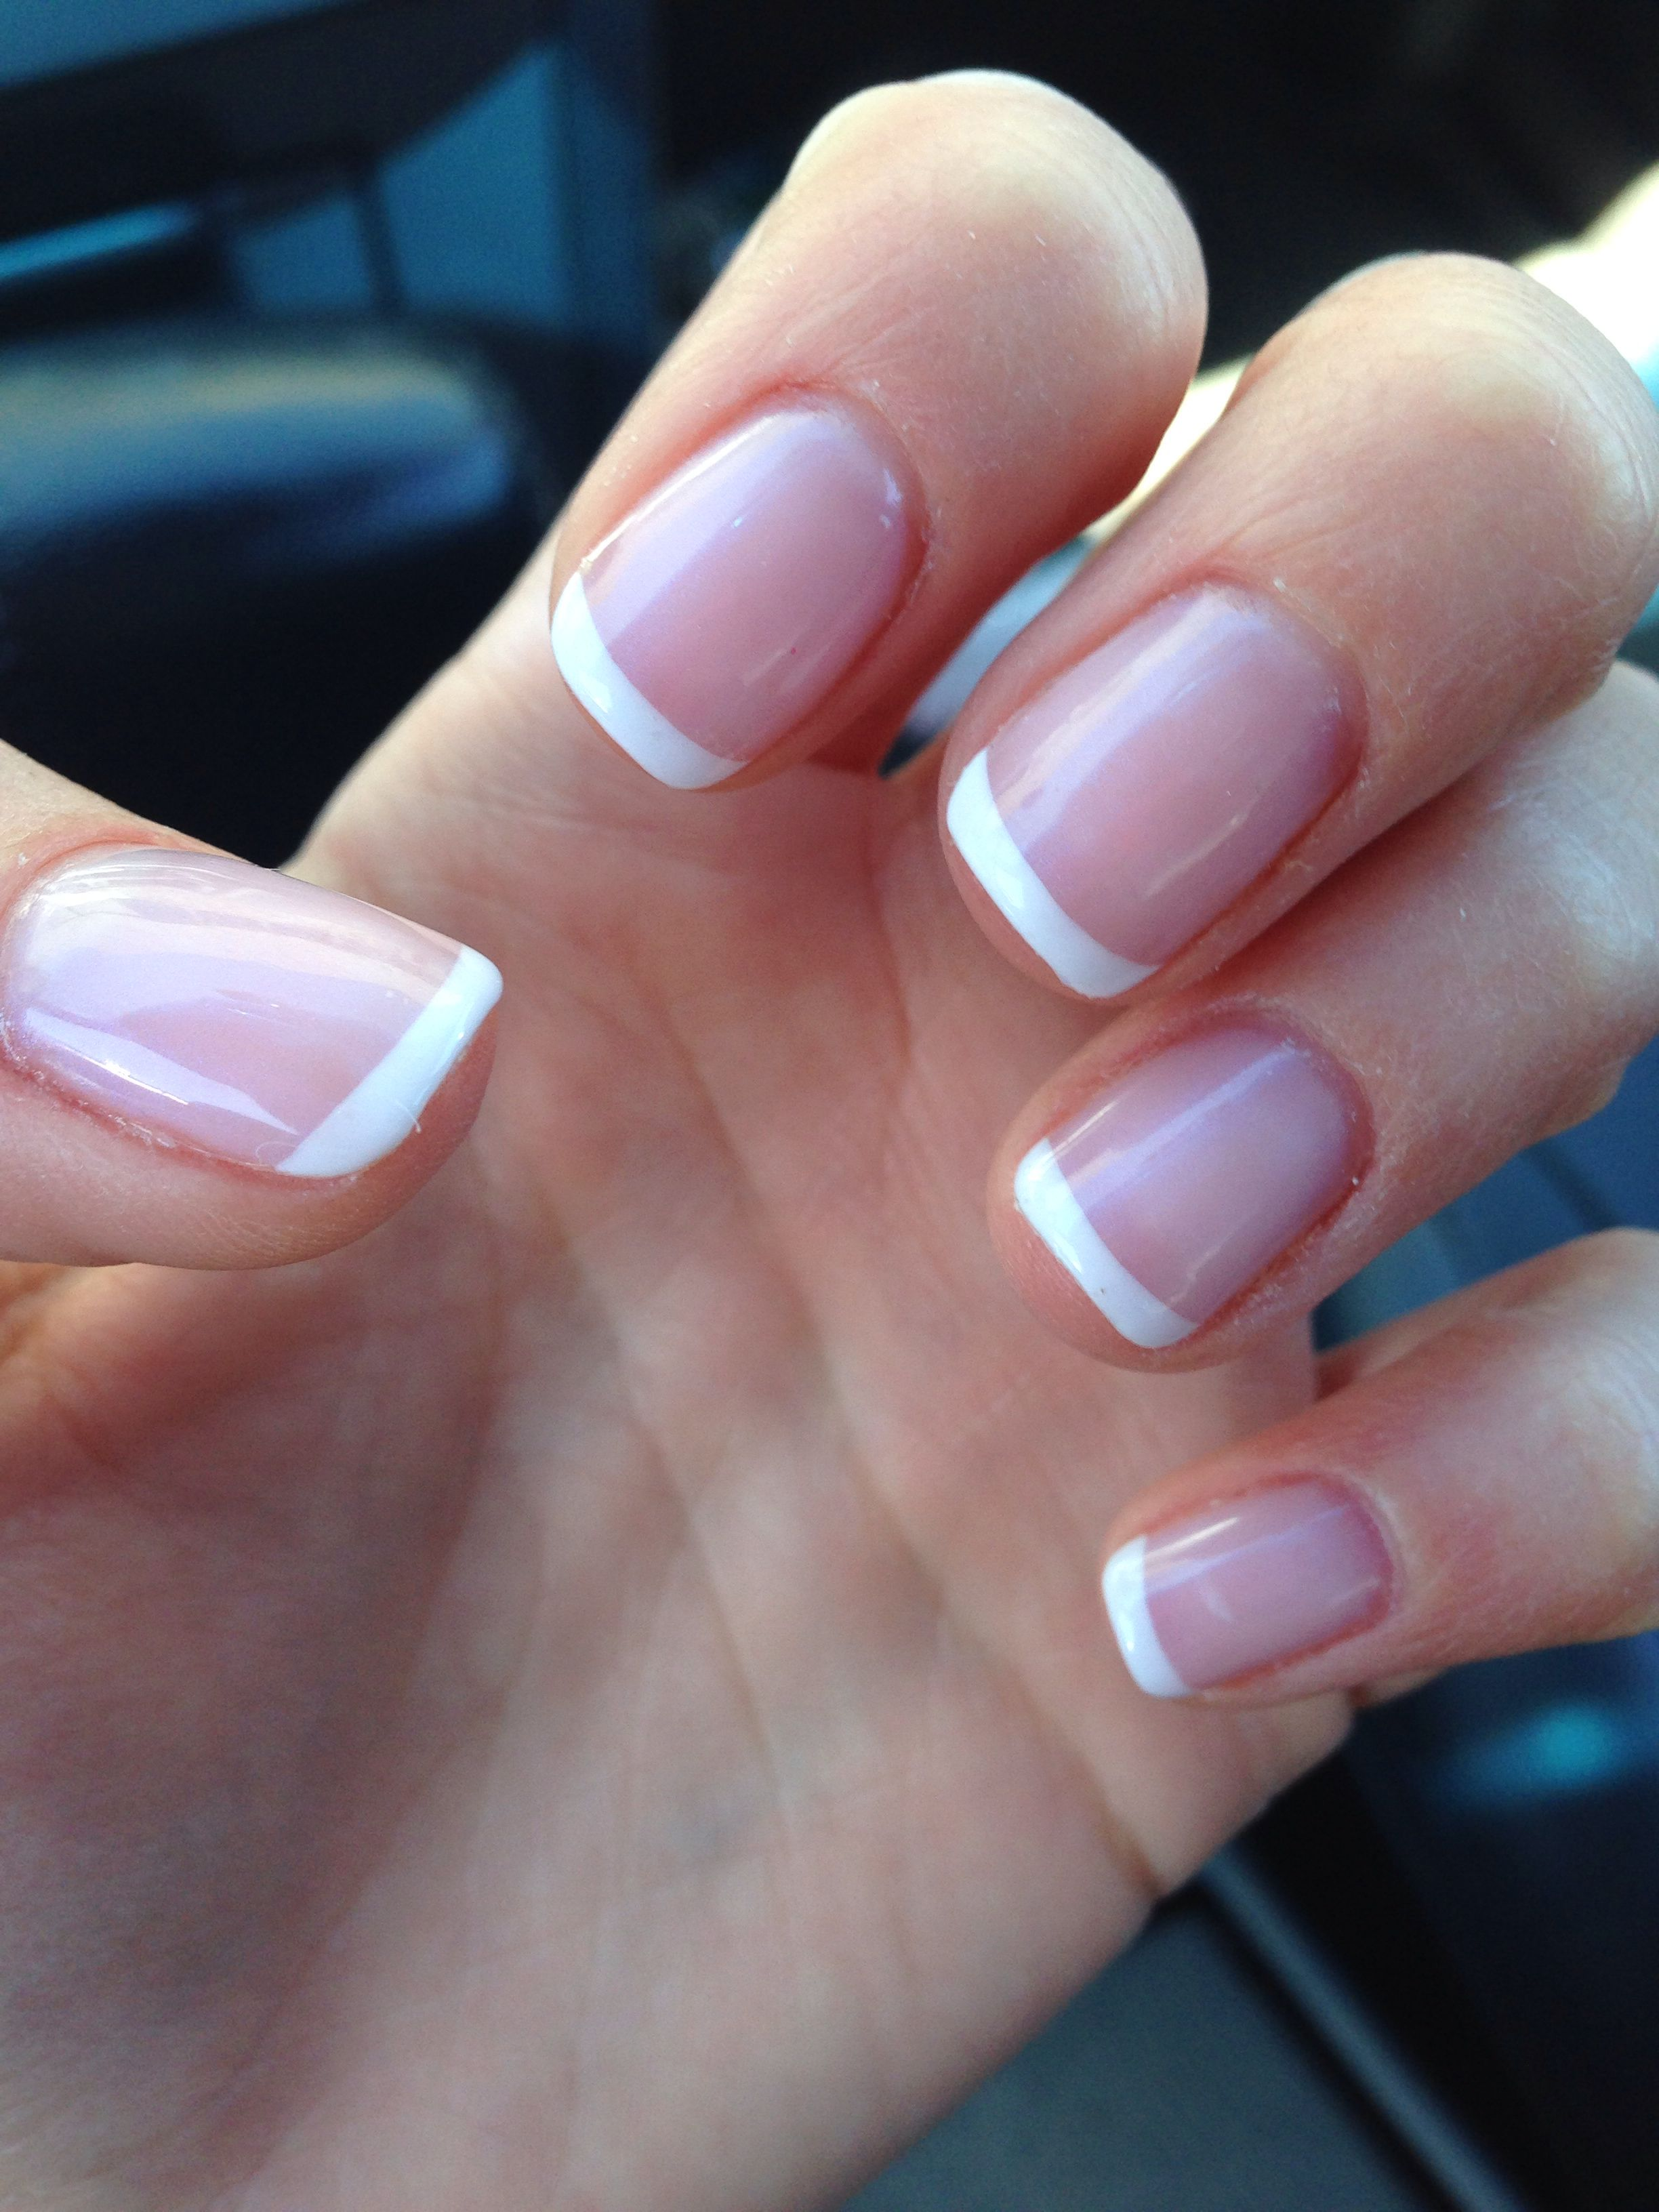 Gel French Manicure Gel French Manicure French Manicure Nails